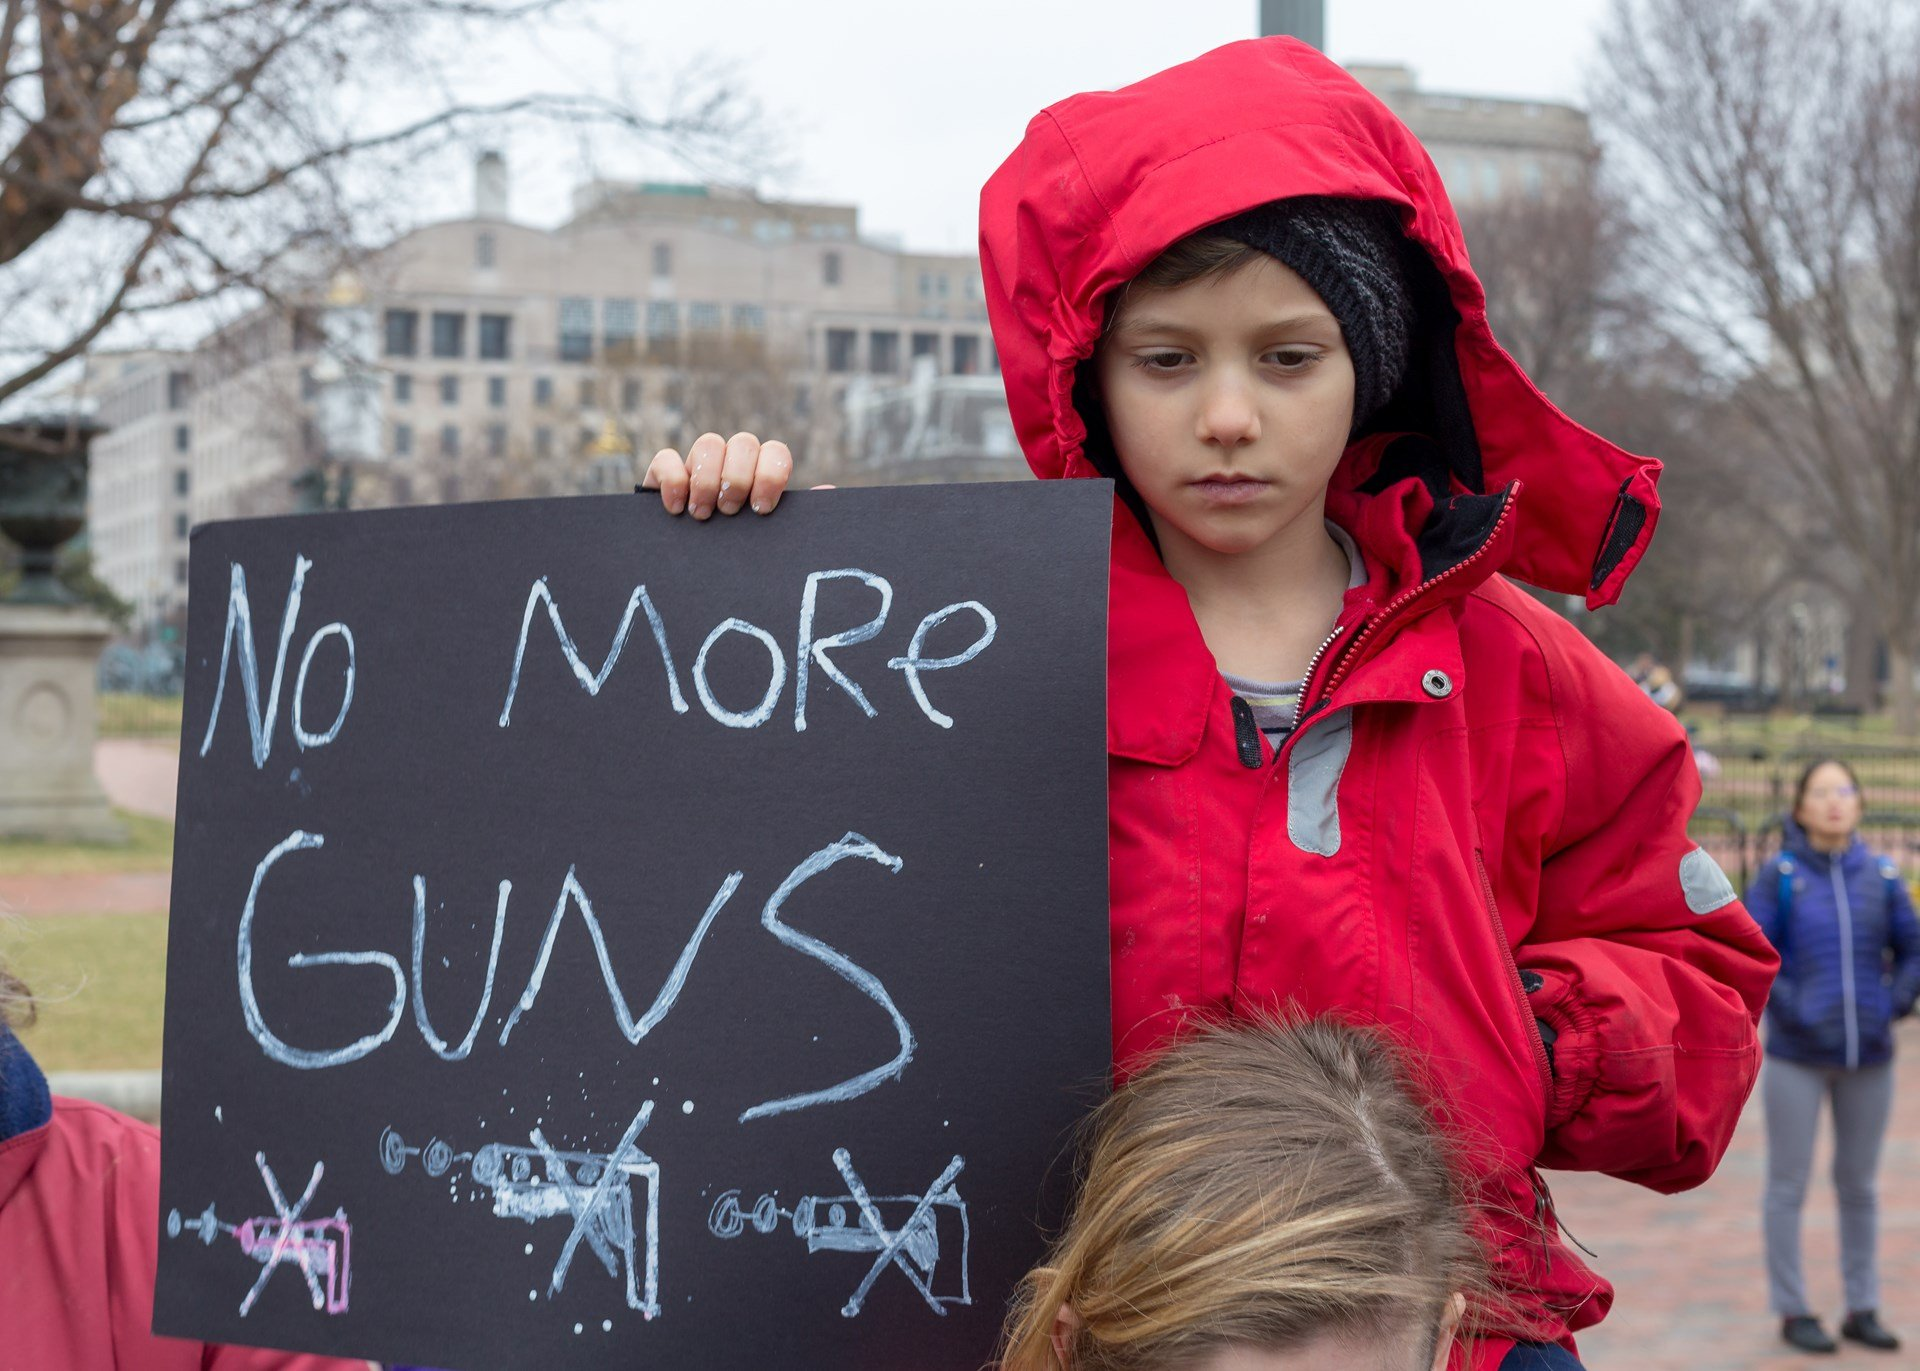 a3bfd6051bc6 6 Logical Fallacies to Look out for in the Gun Debate - Foundation ...